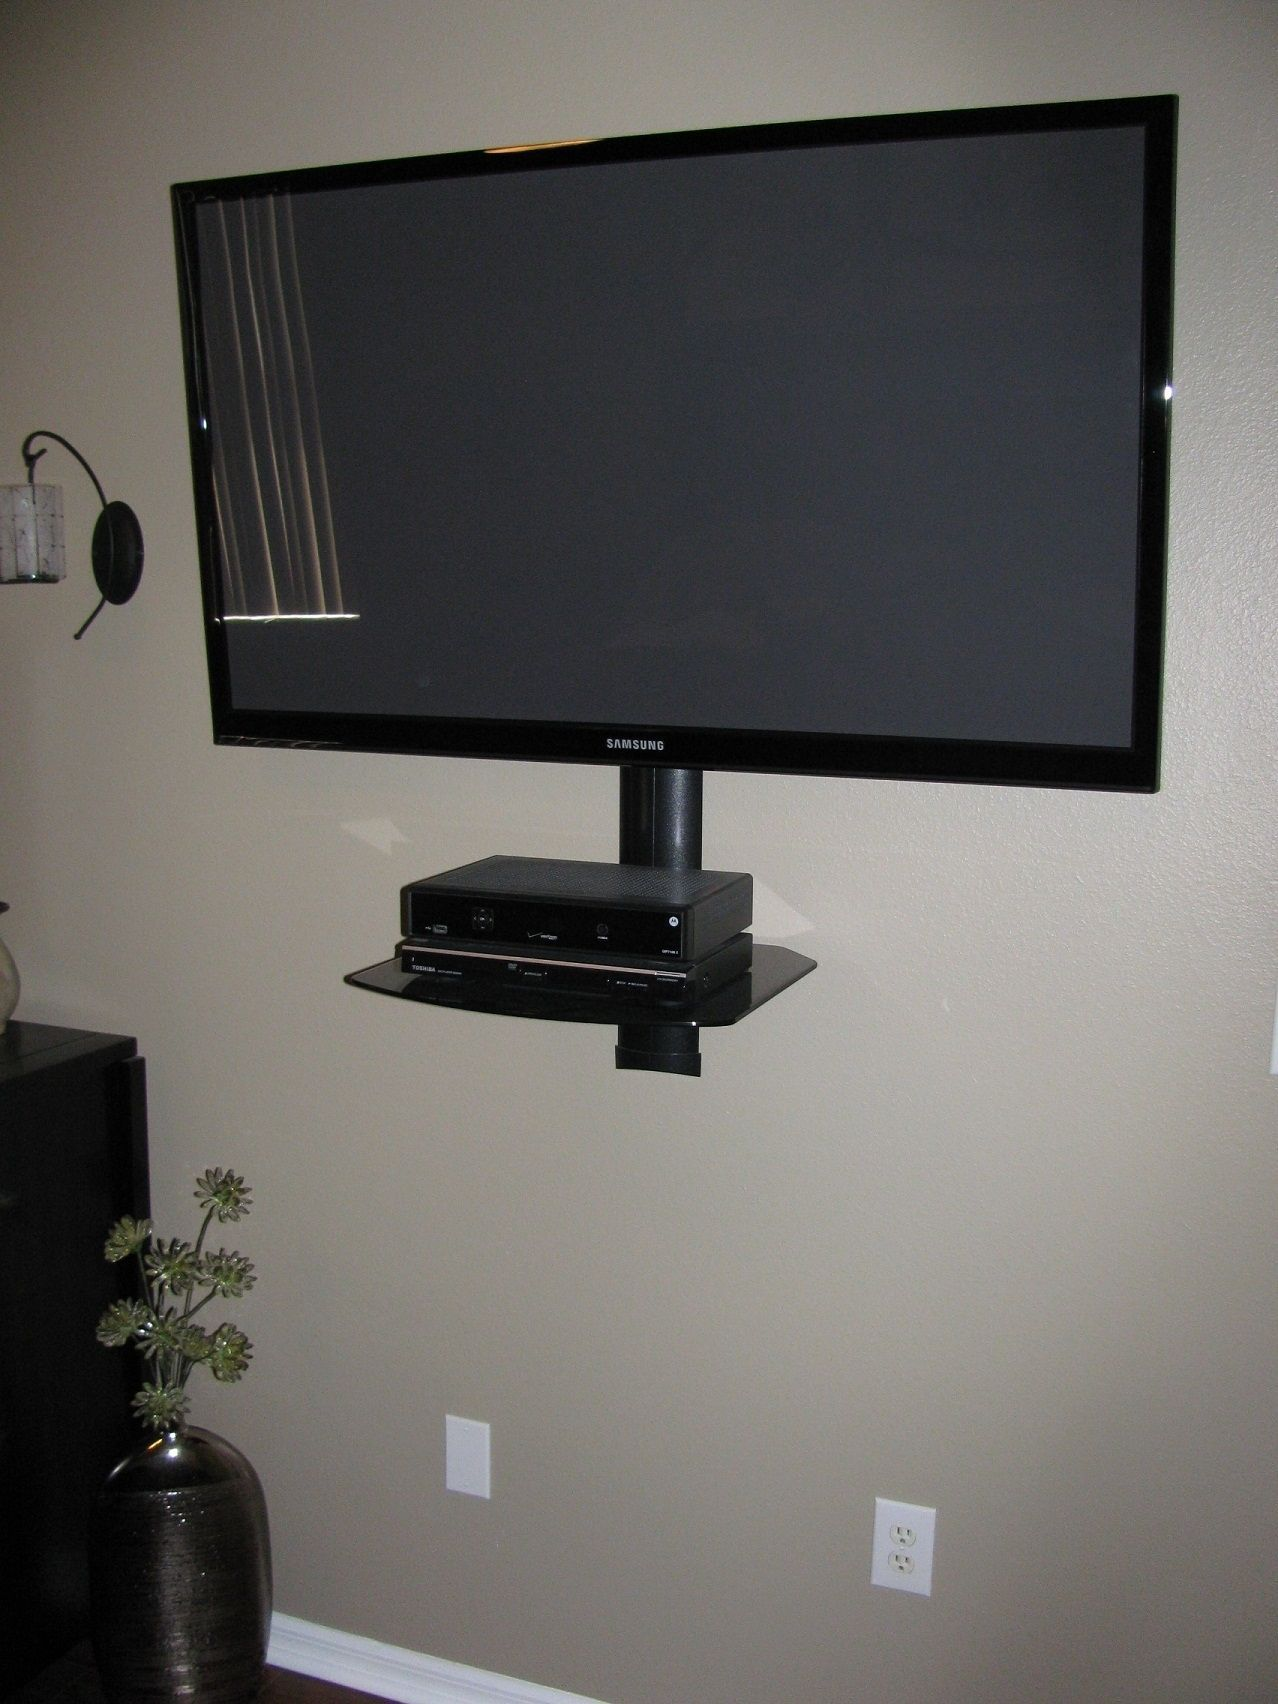 Tv Wall Mount With Shelf For Cable Box Wall Mounted Shelves